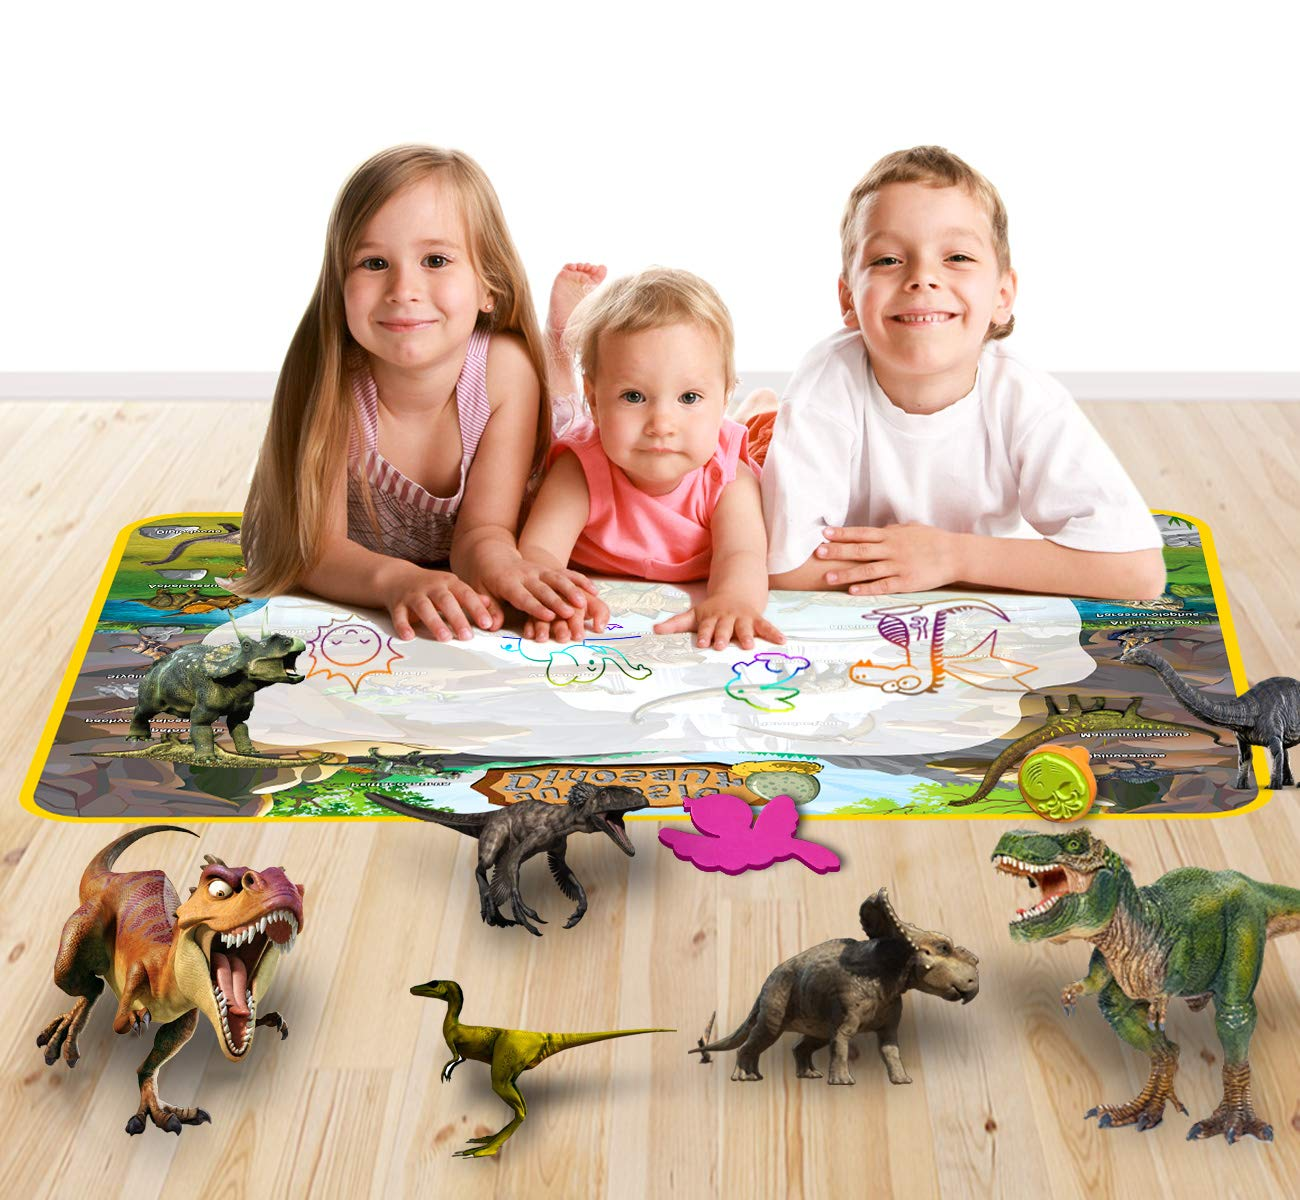 Chennys Aqua Doodle Mat Dinosaur Theme Water Drawing Mat for Kids Toddler Toy Painting Board with 2 Magic Pens and 18 Drawing Accessories for Boys Girls 38.8 X 28.5 2 Magic Brush Dinosaurs